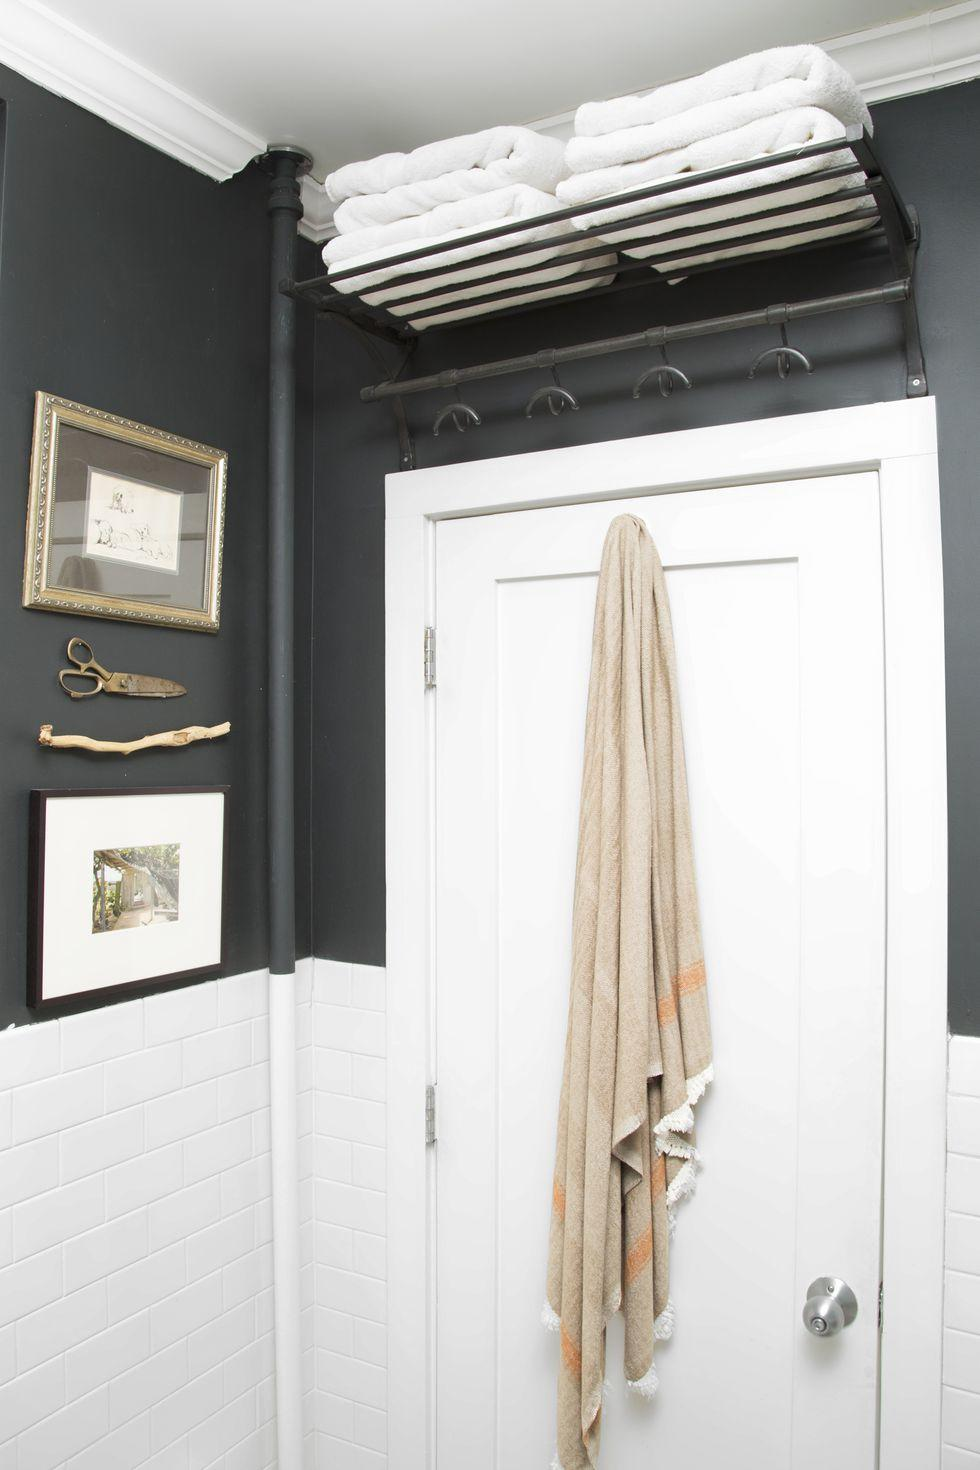 10. Use the Space above the Door via Simphome